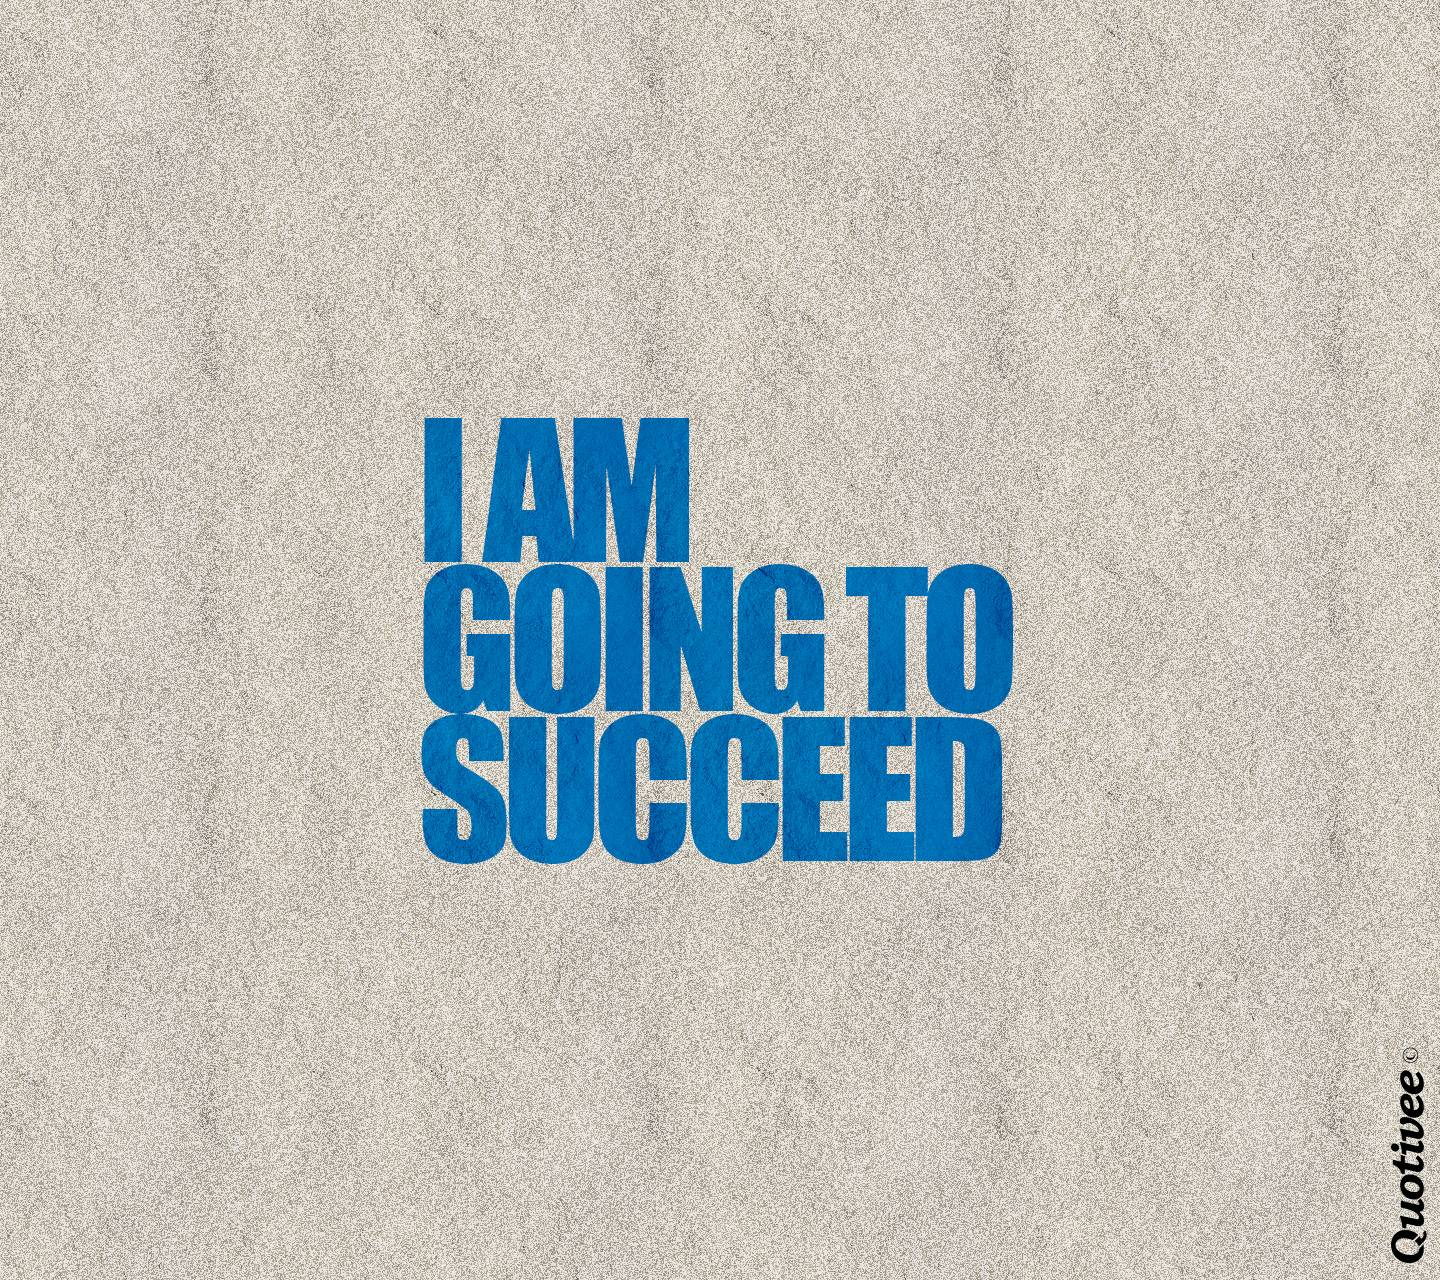 quotes about success wallpaper - photo #19